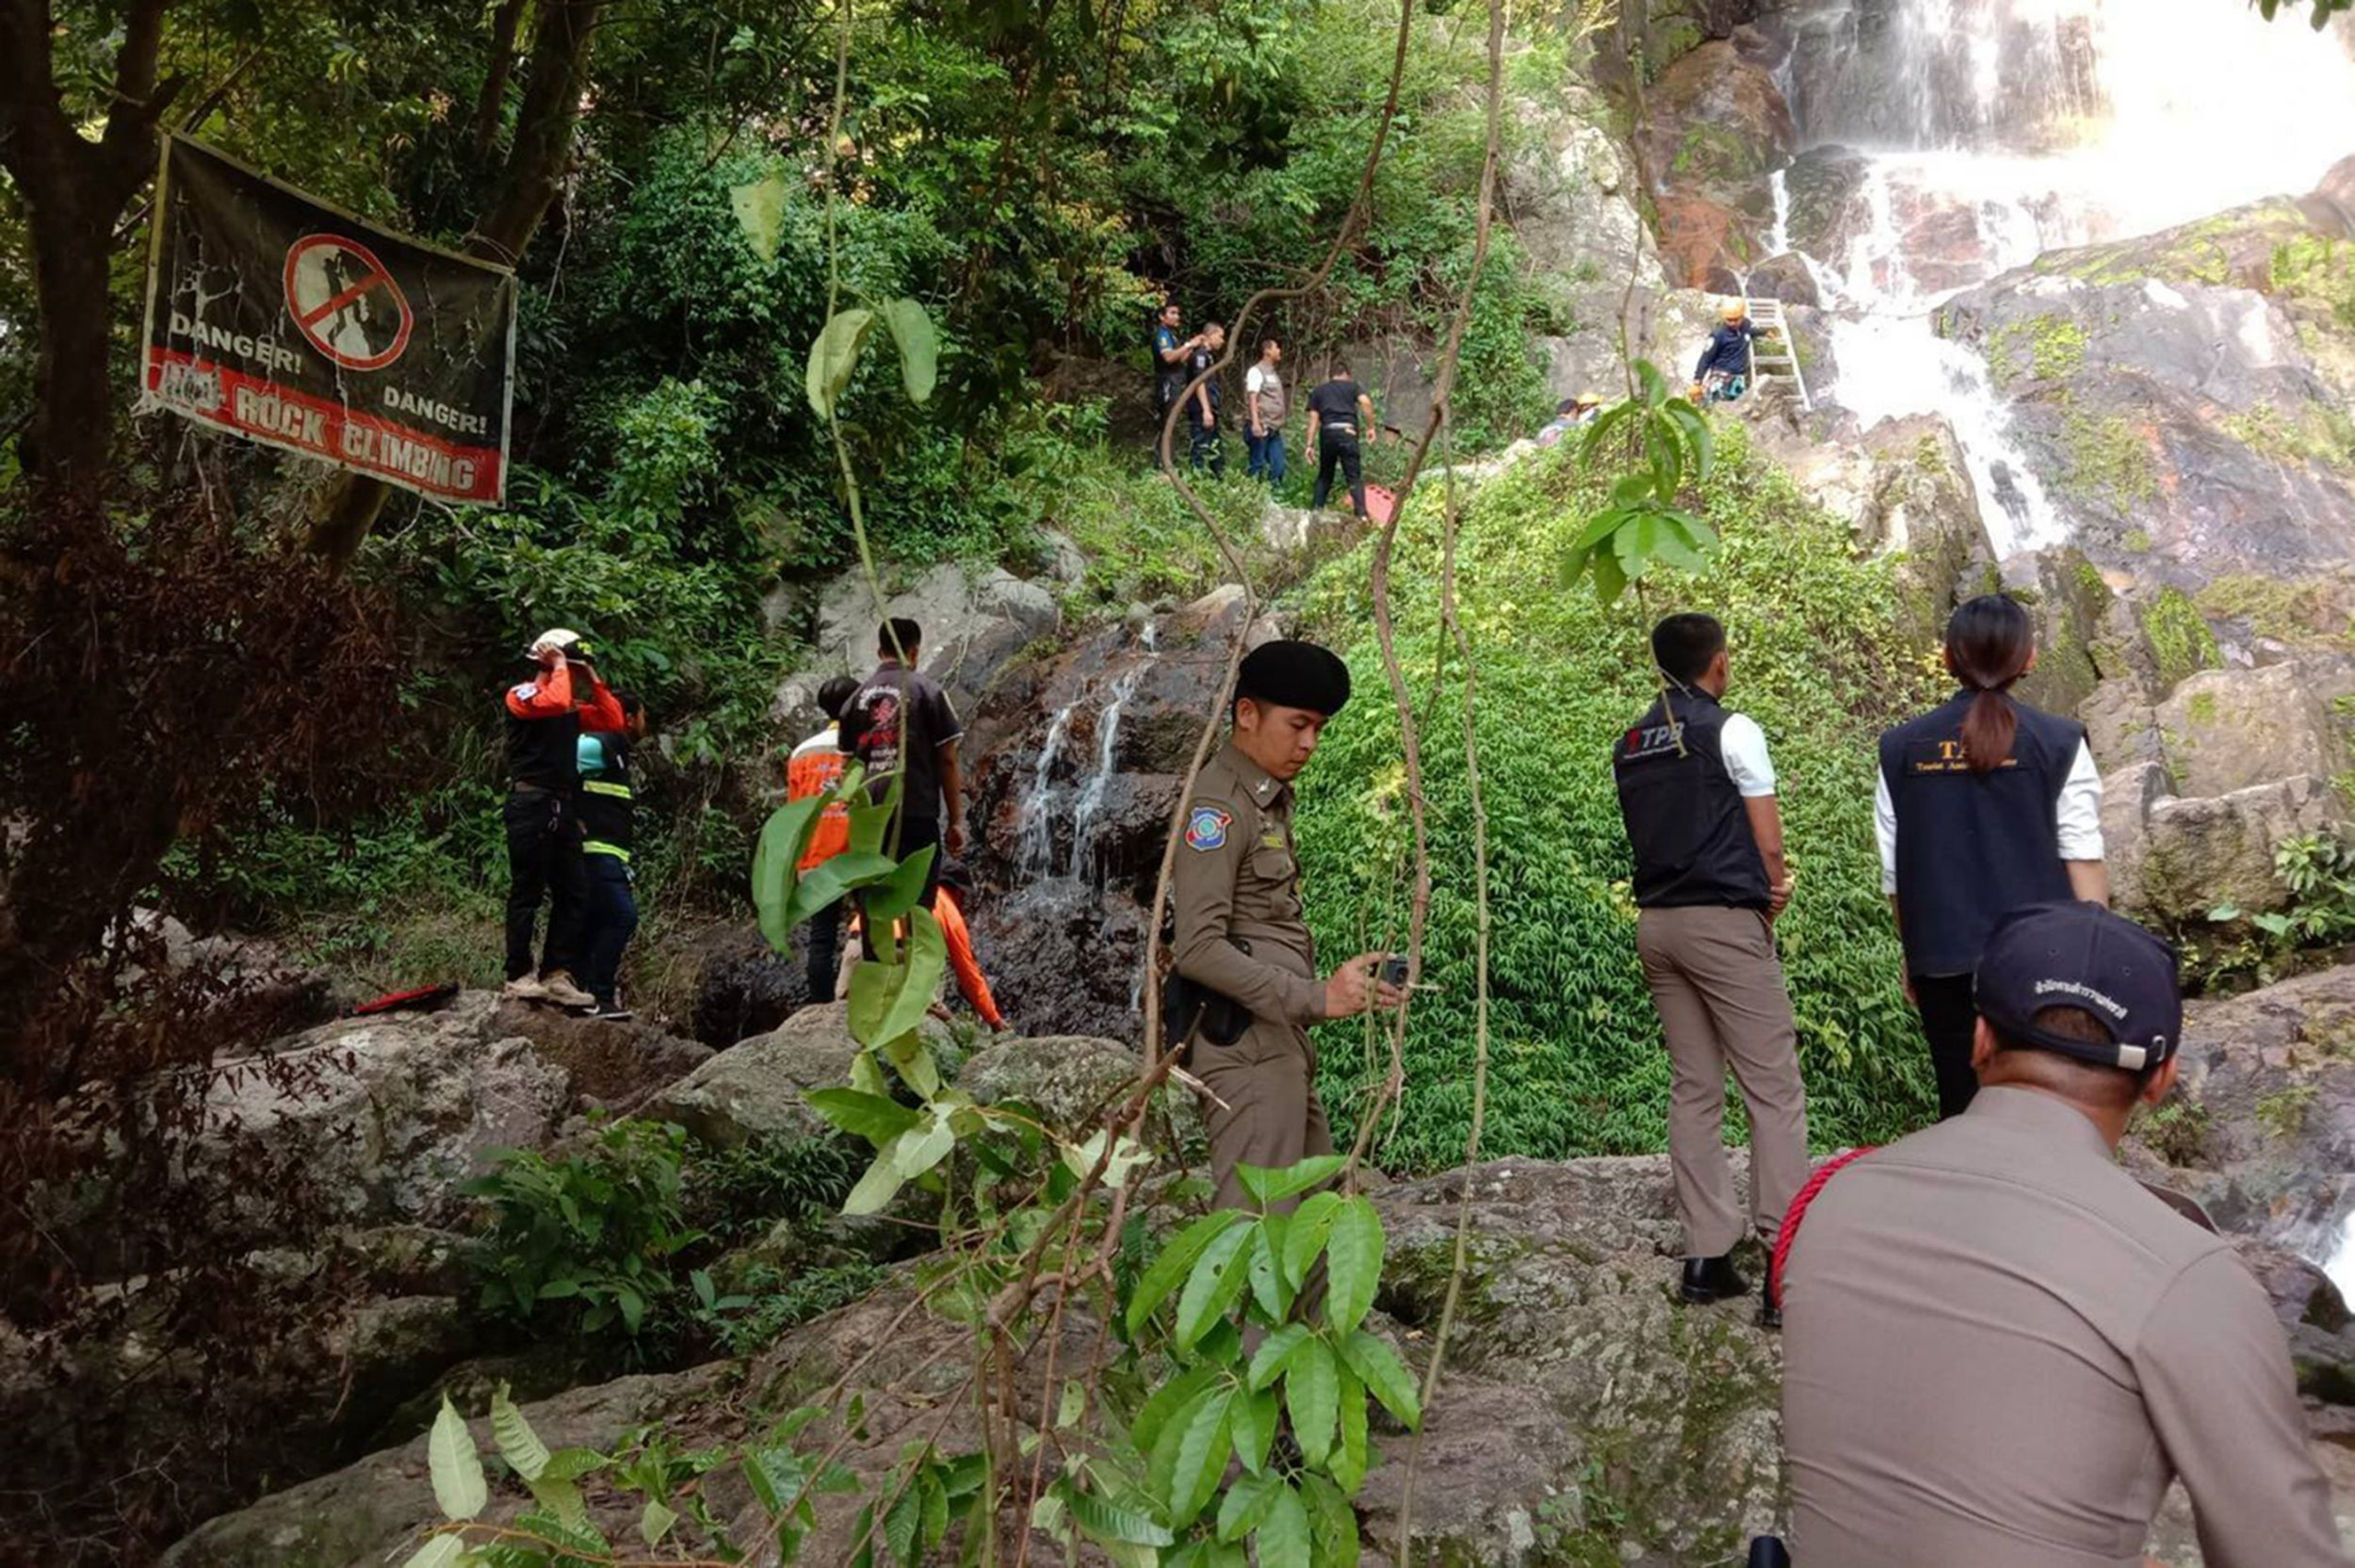 Tourist dies after falling from waterfall while trying to take a selfie in Thailand, police say